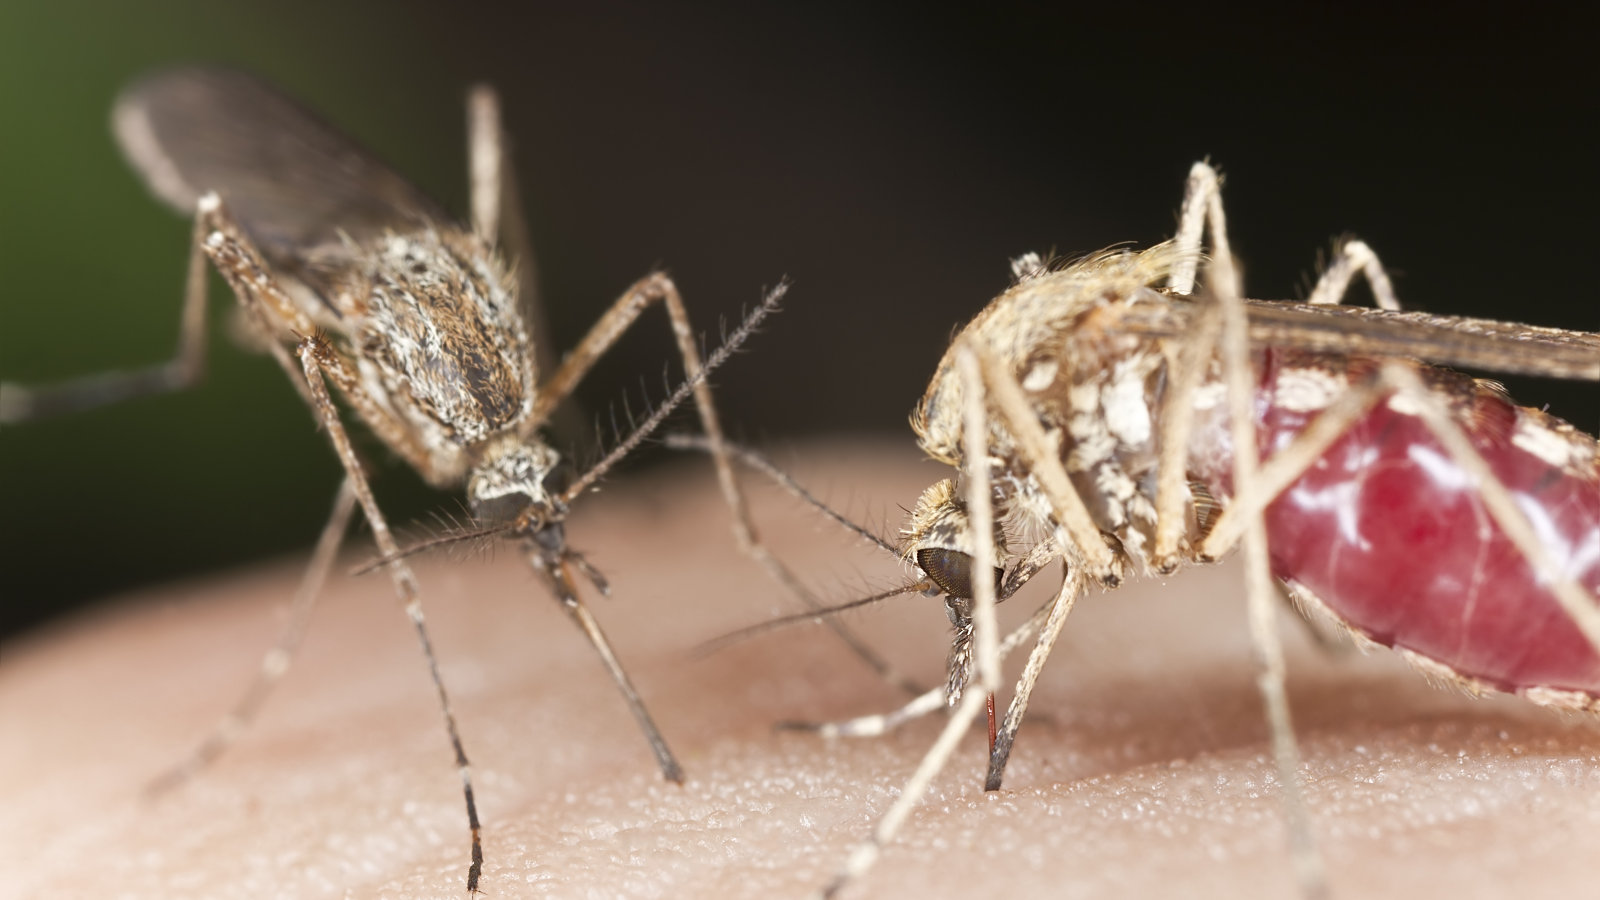 Click here to read How to Keep Mosquitoes Out of Your Yard